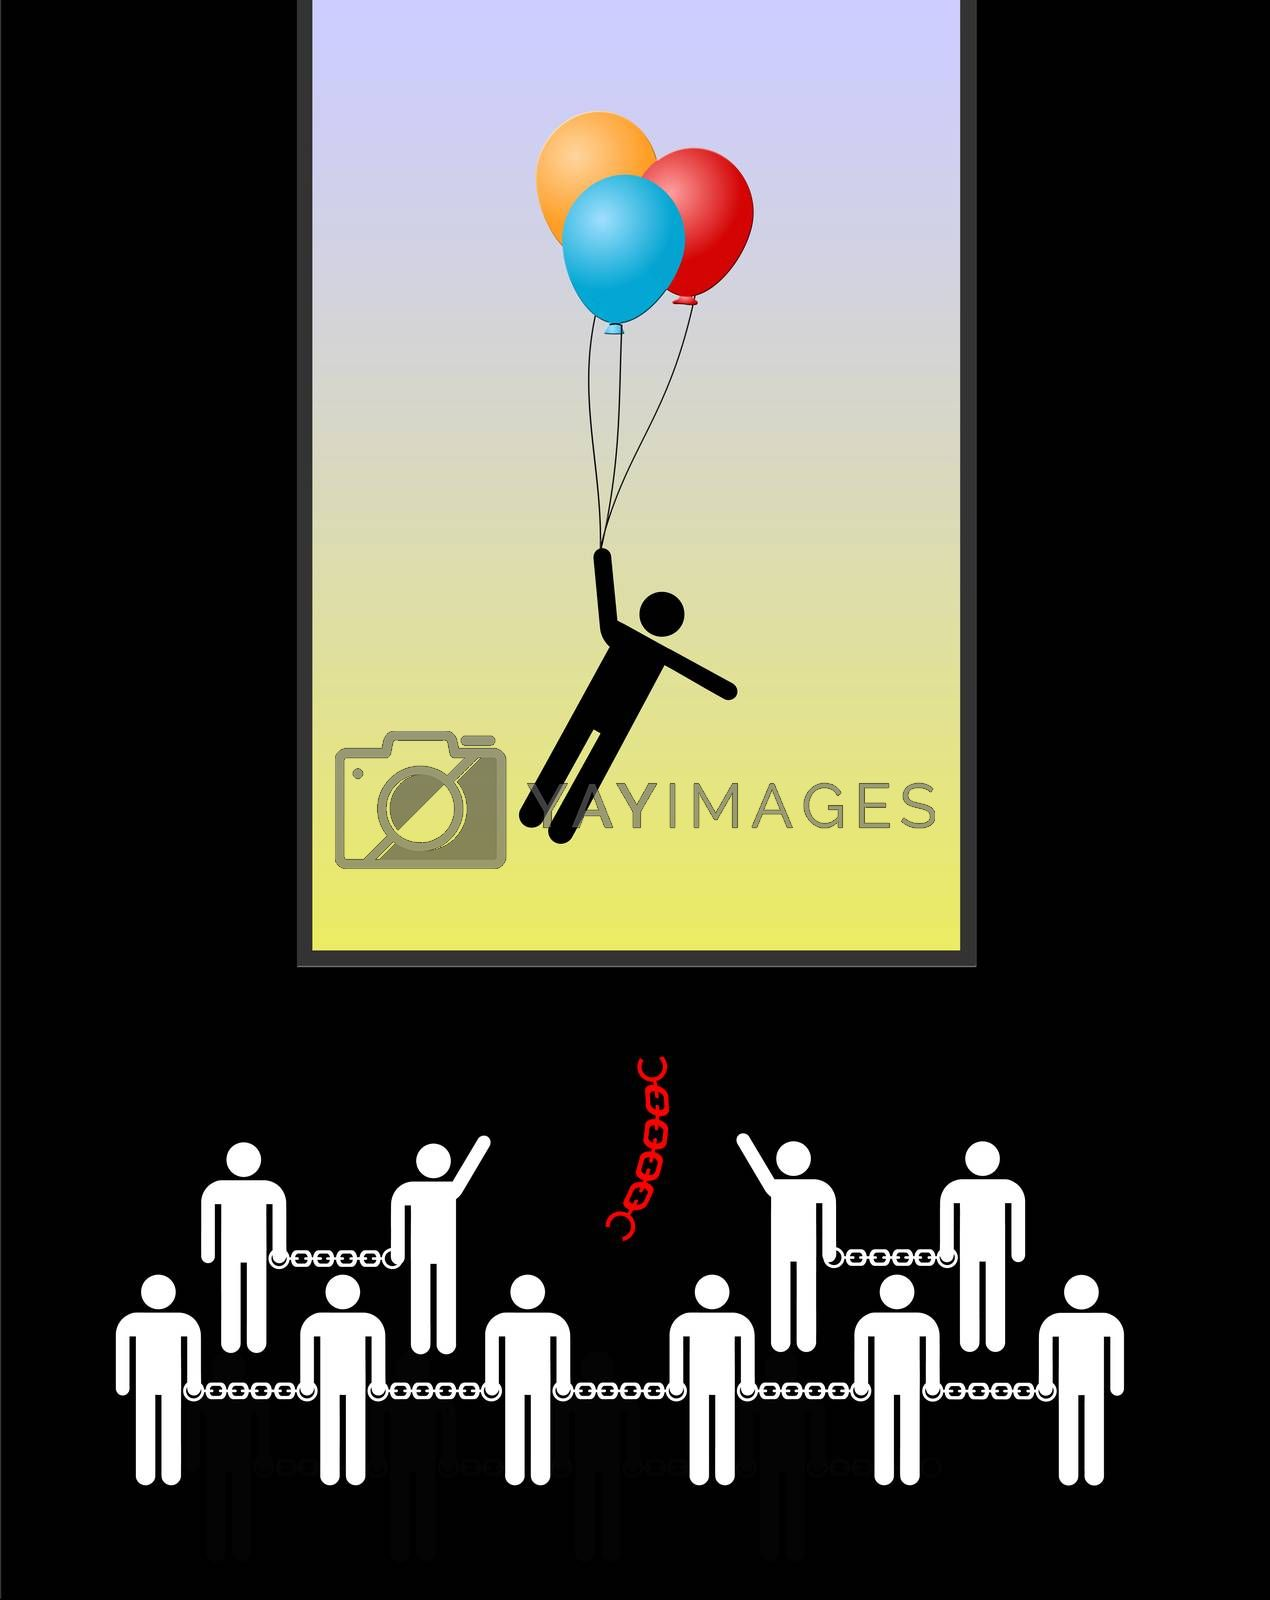 Concept sign and business metaphor of a highly gifted person outranking his peers and colleagues